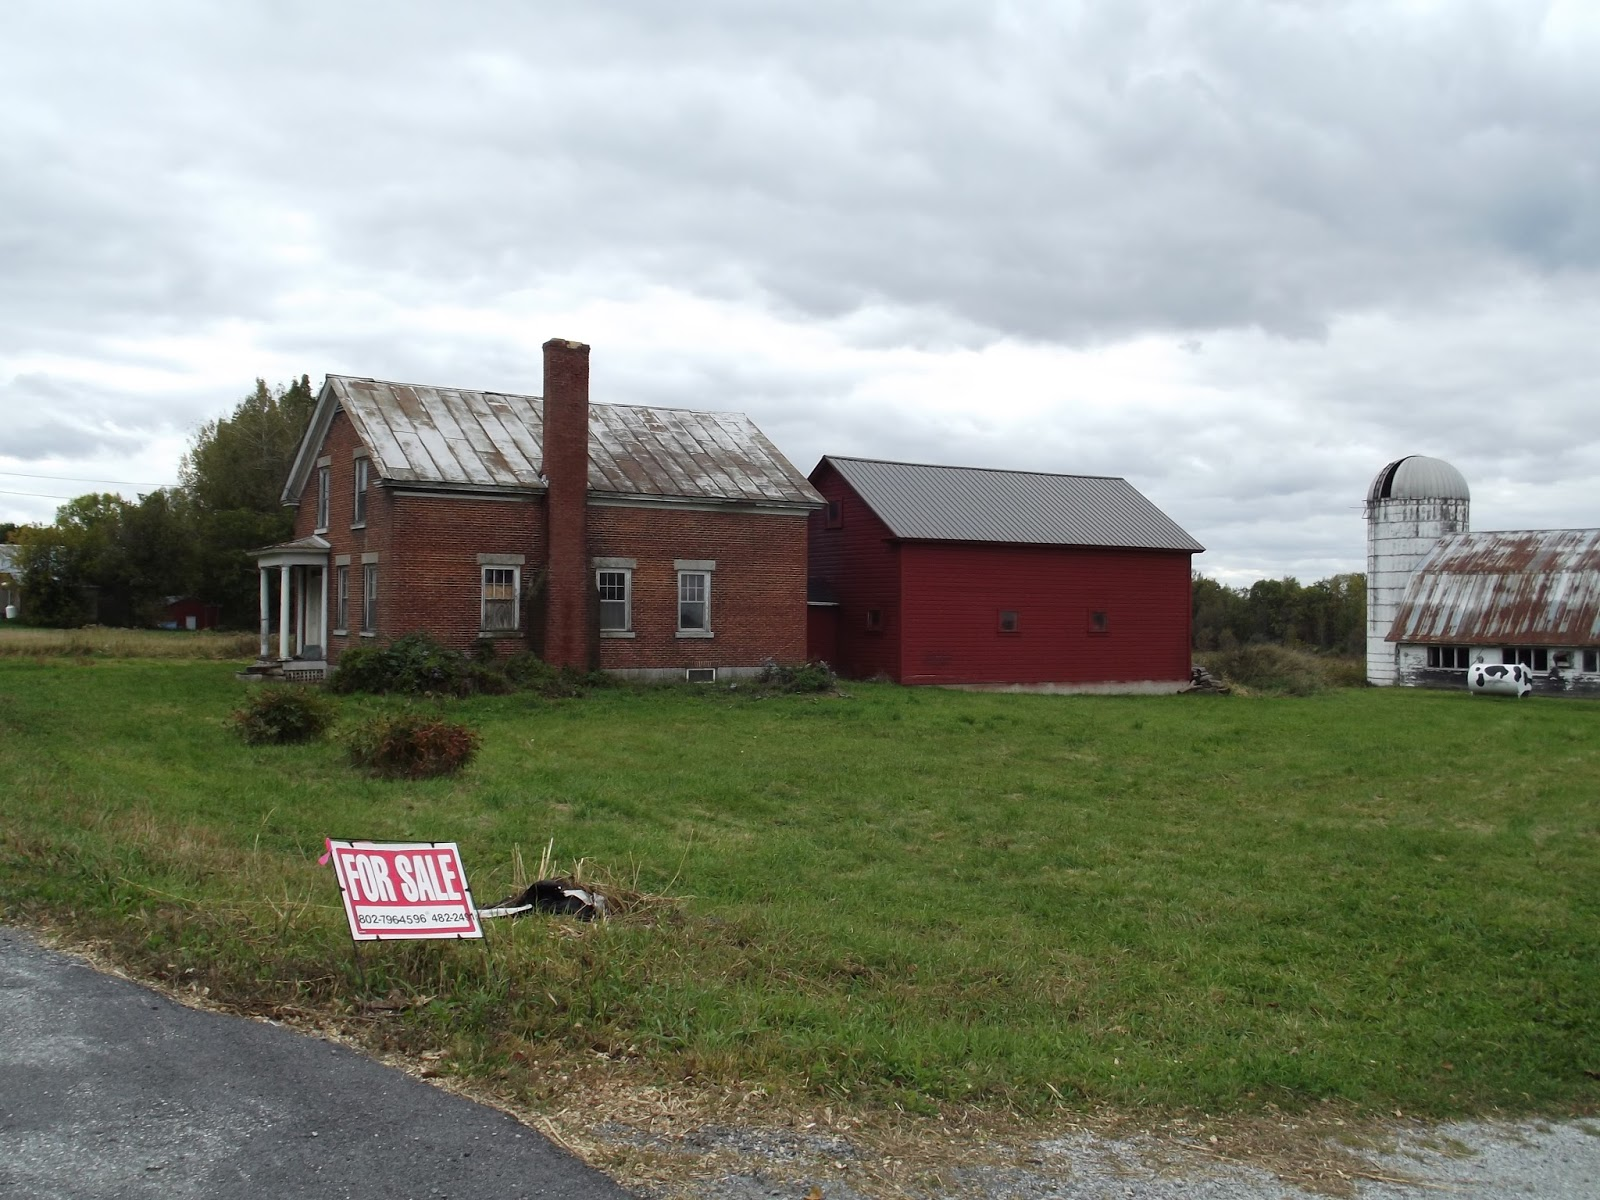 The old granite step abandoned in vermont house for sale for Cost of building a house in vermont